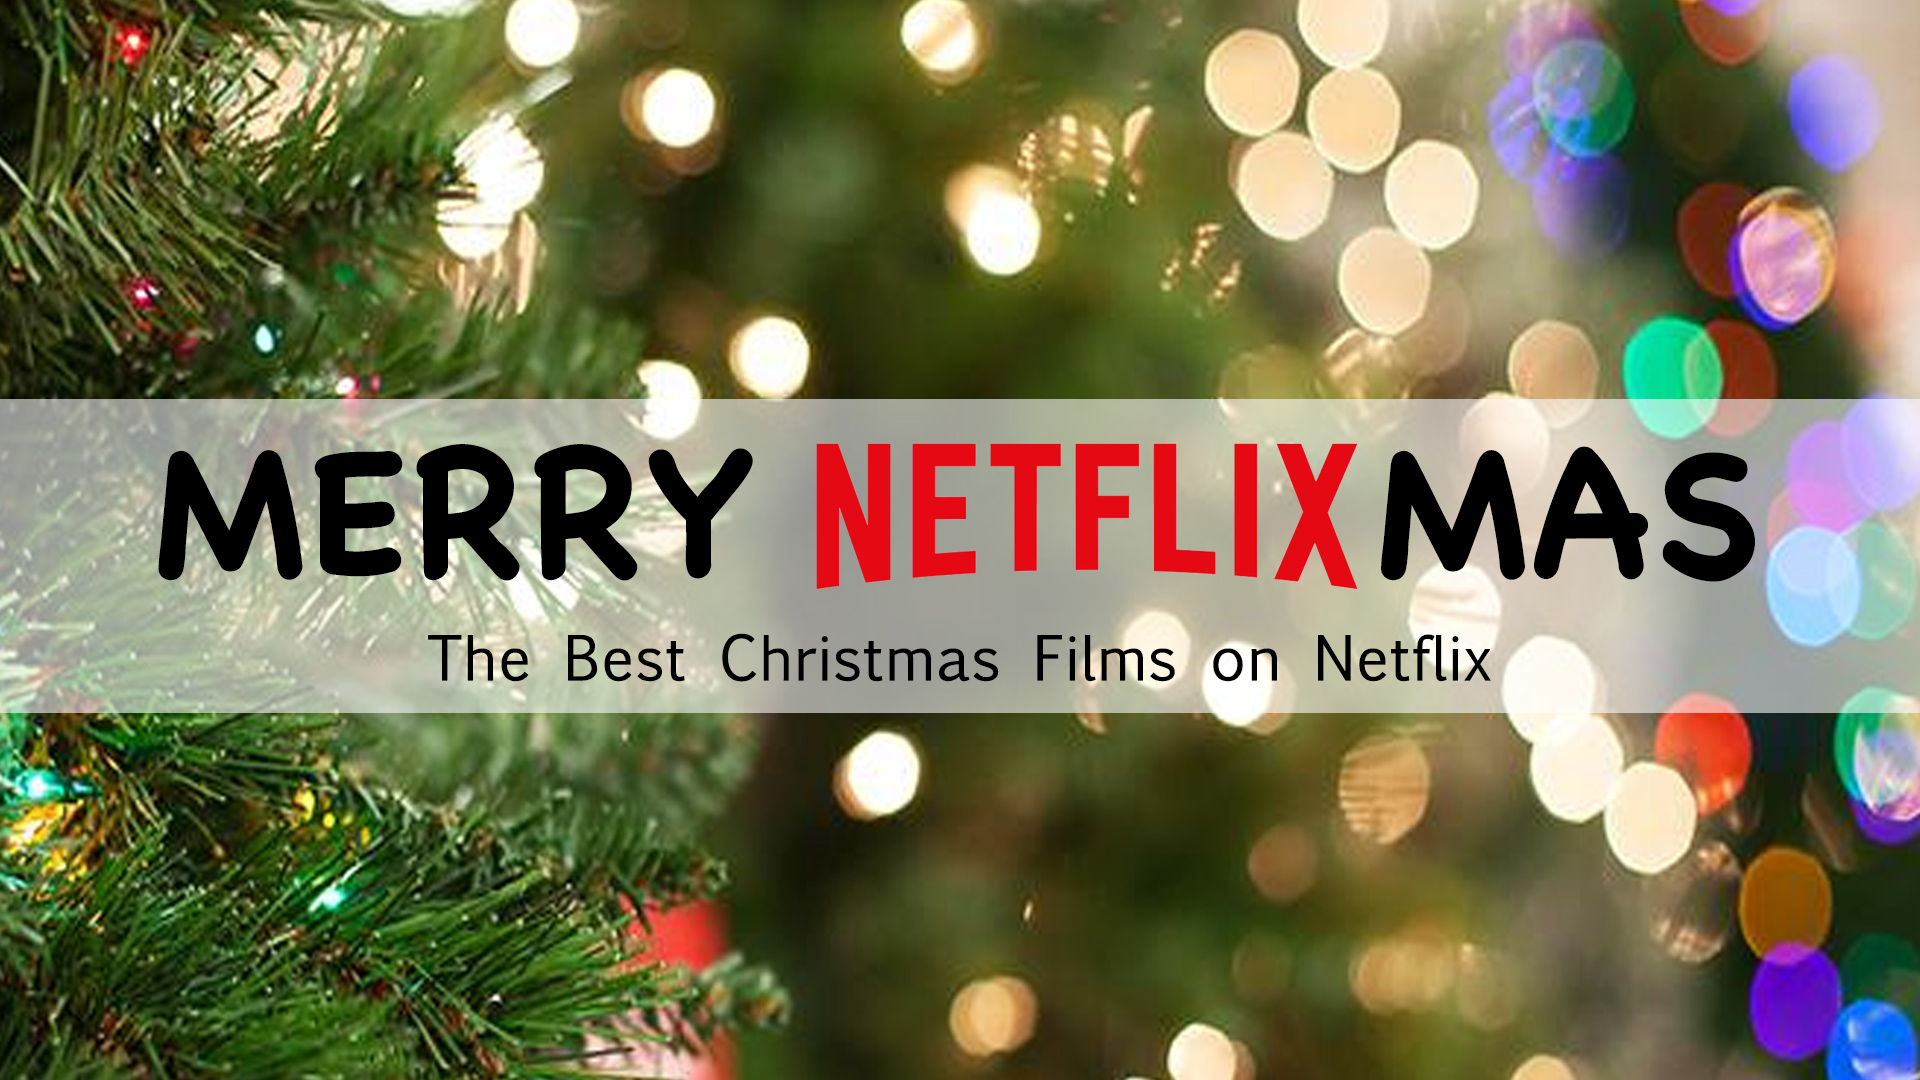 The Best Christmas Films on Netflix